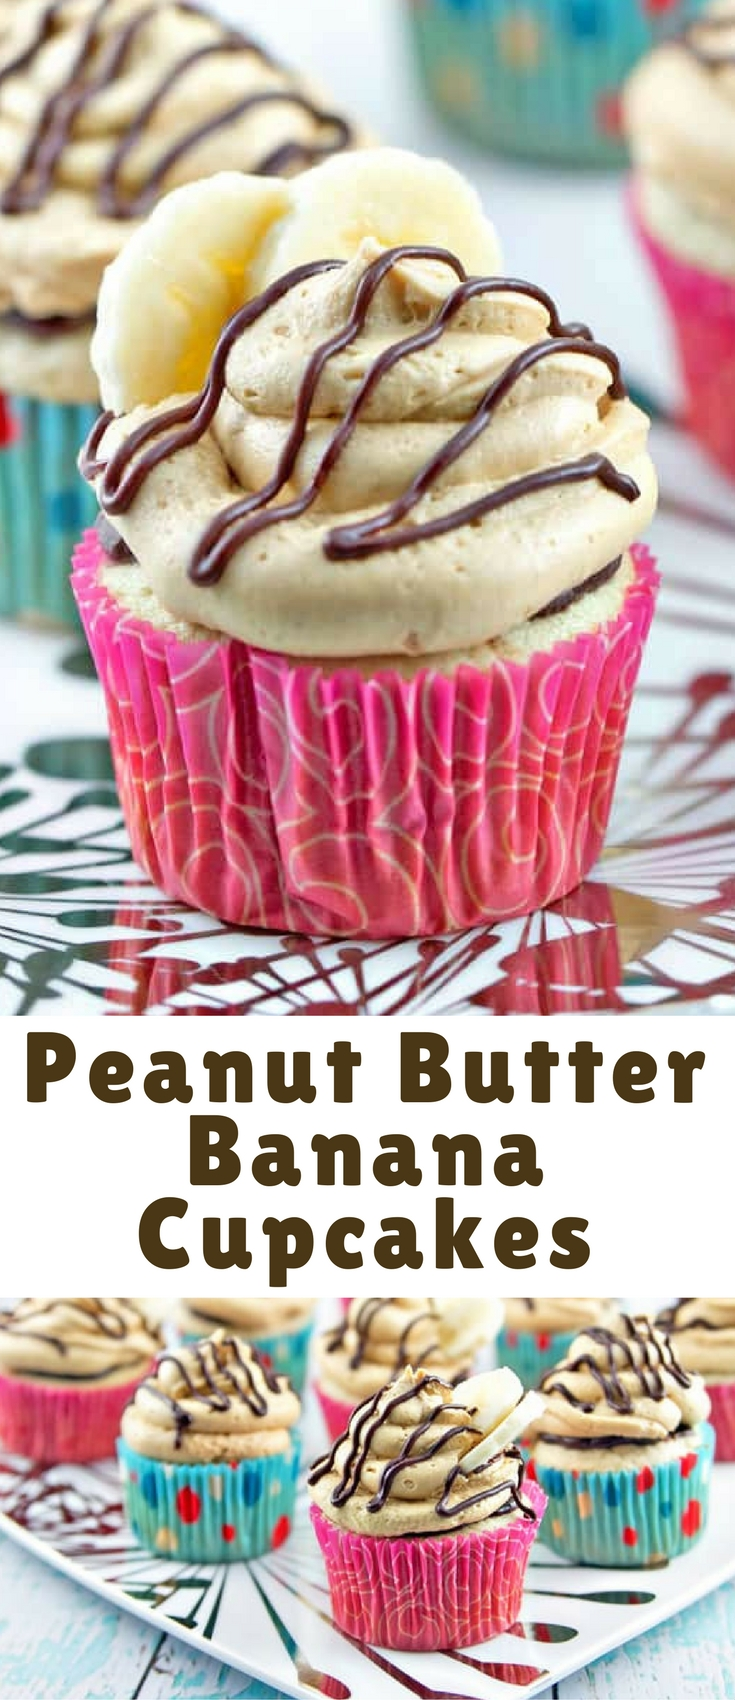 Banana cupcakes filled with chocolate ganache and covered with fluffy peanut butter buttercream frosting. These are peanut butter banana cupcakes worthy of a celebration.